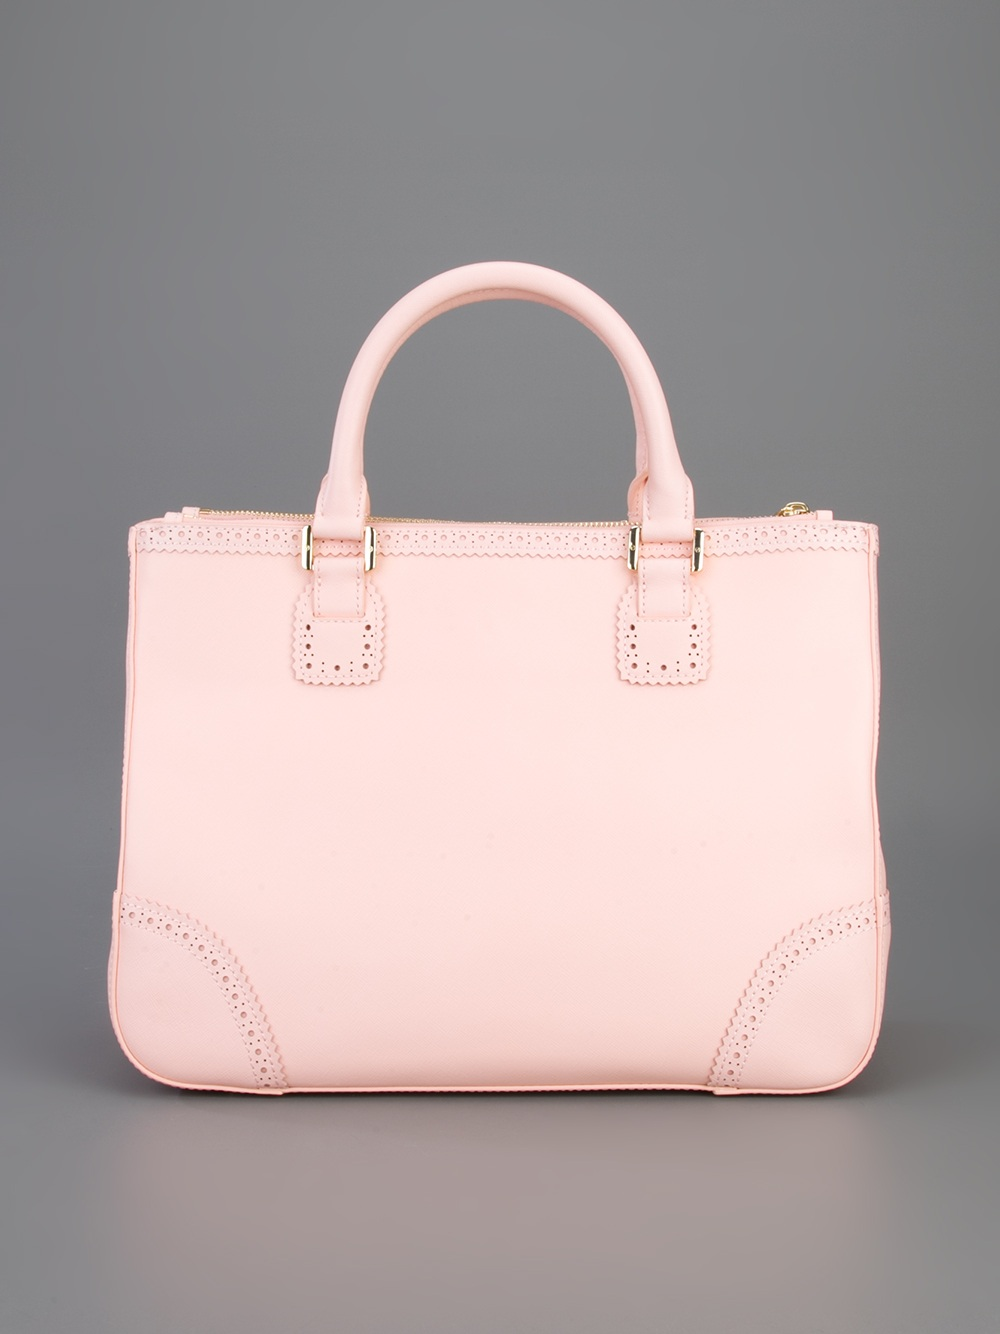 Tory Burch Robinson Spectator Bag in Pink  Lyst